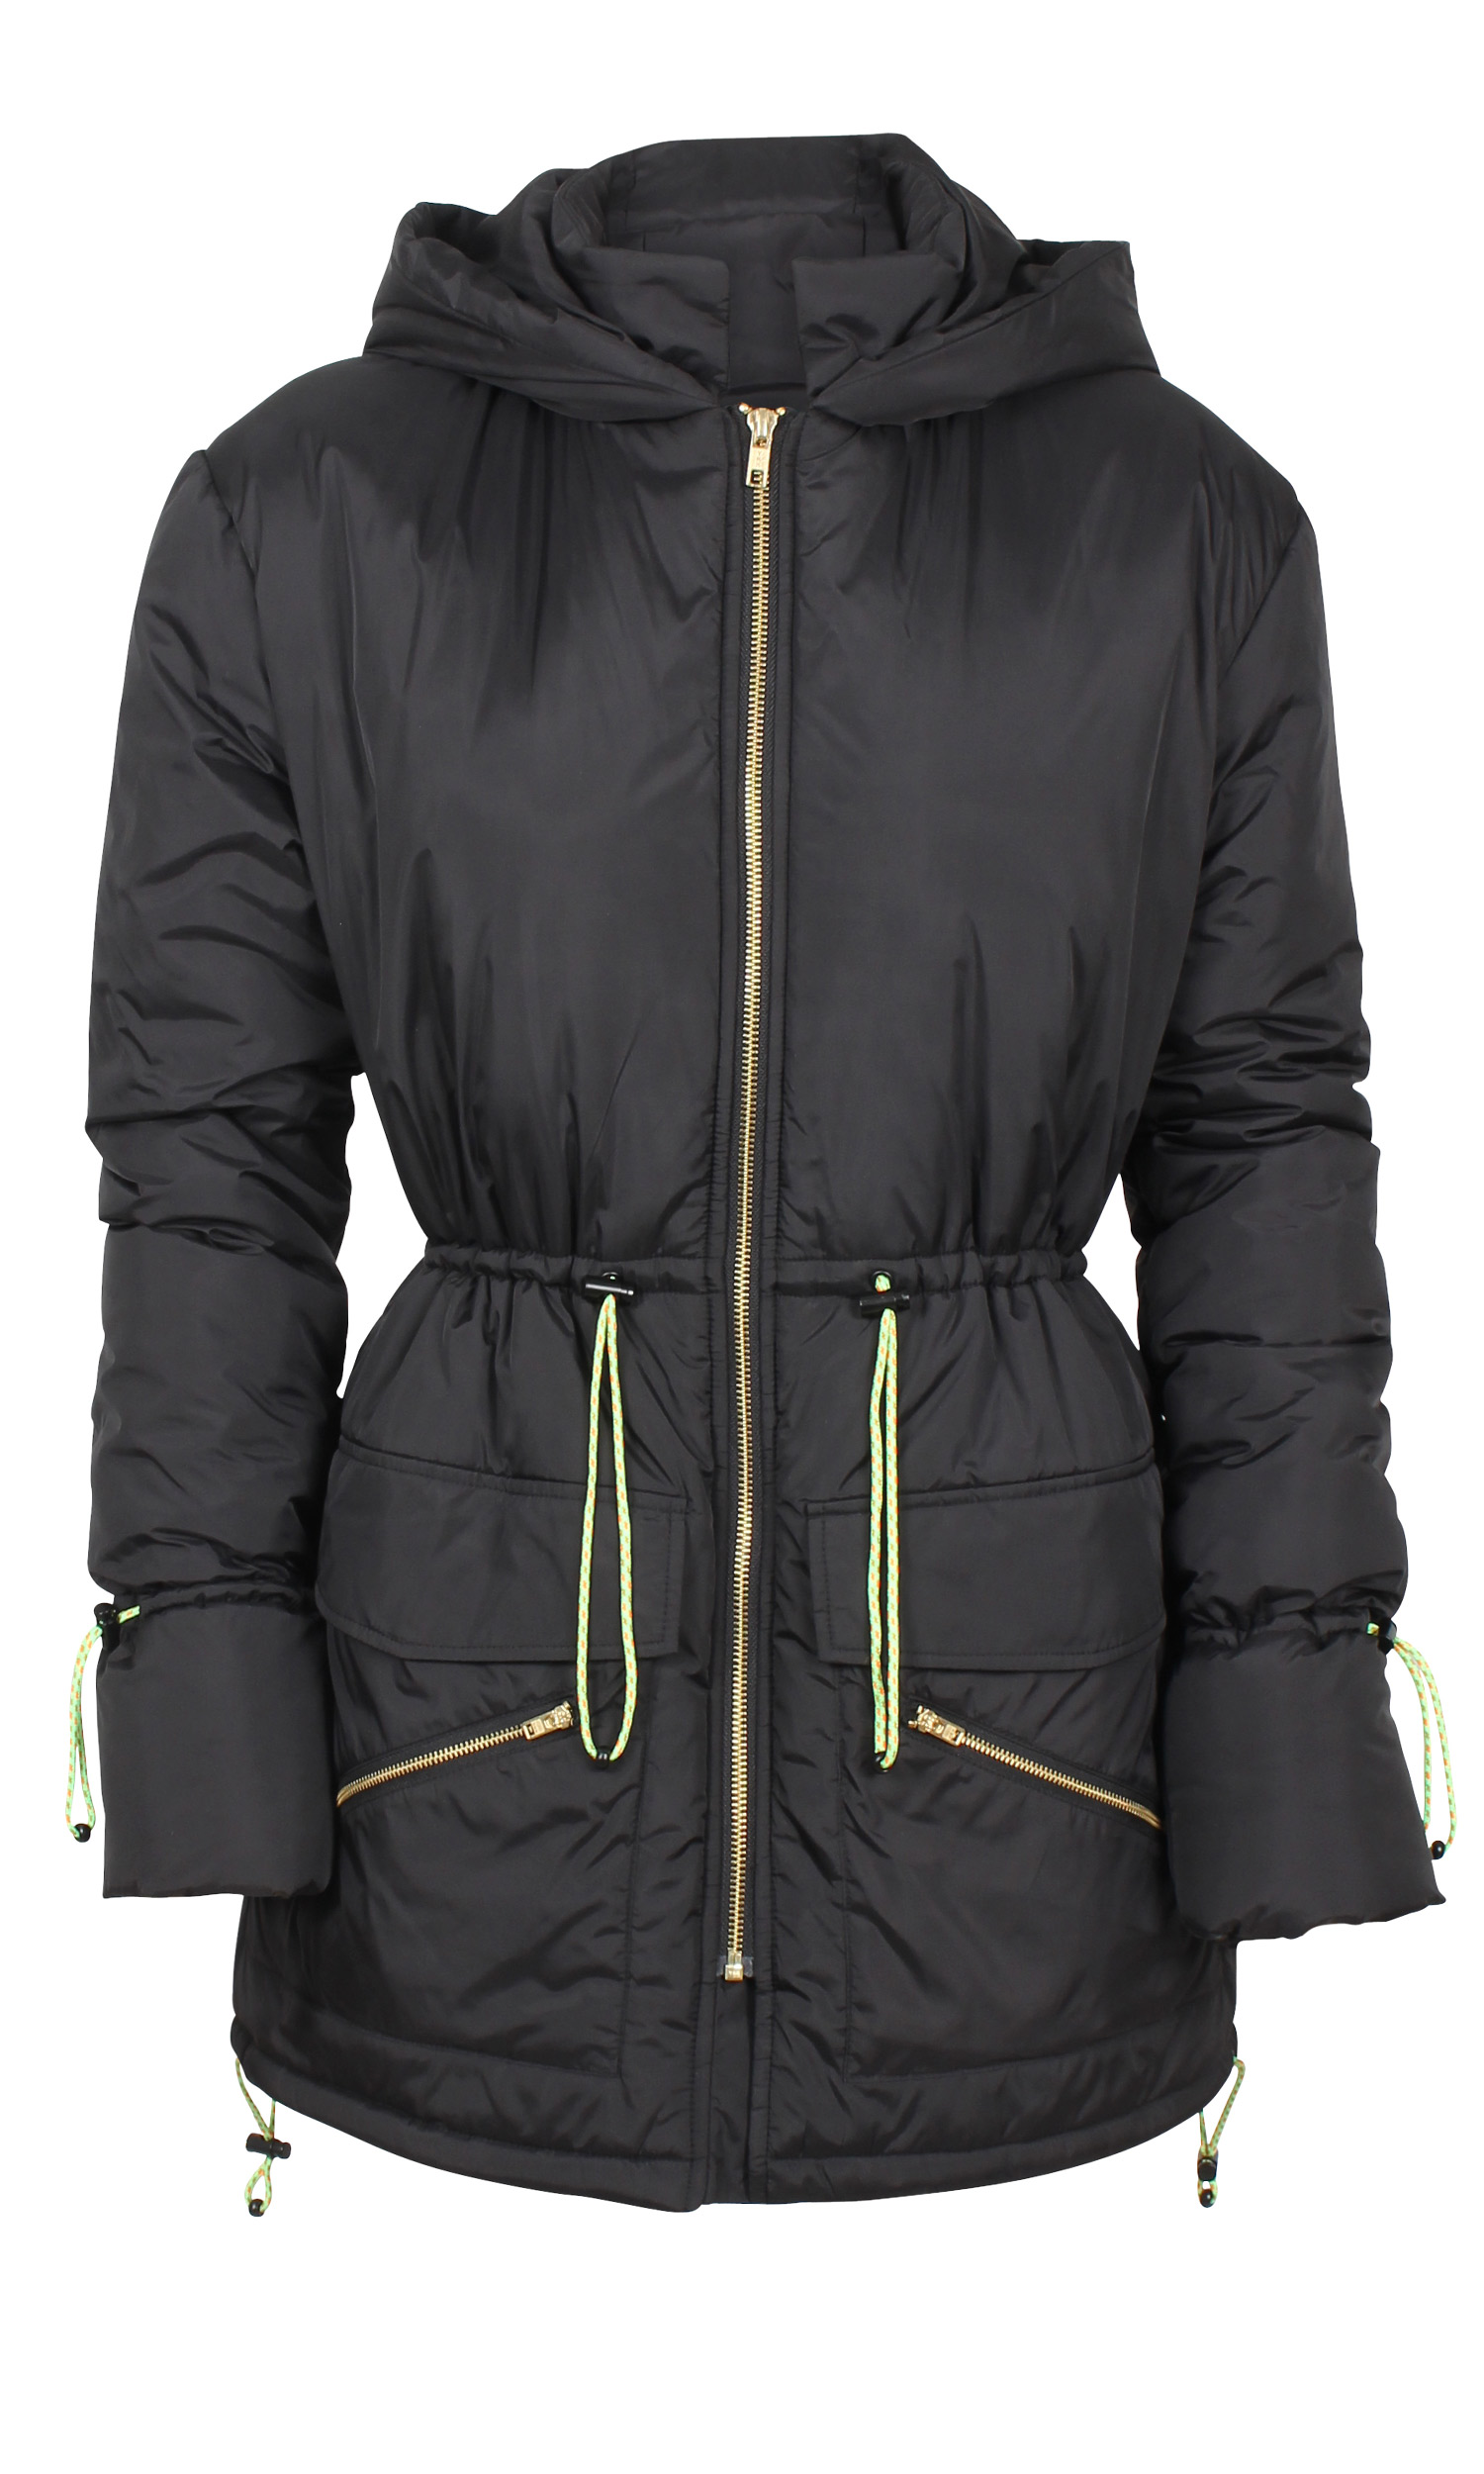 3ad583f96ca4 PRINCE PUFFER JACKET - Category-Jackets & Coats : RUBY - RUBY AW19 ...